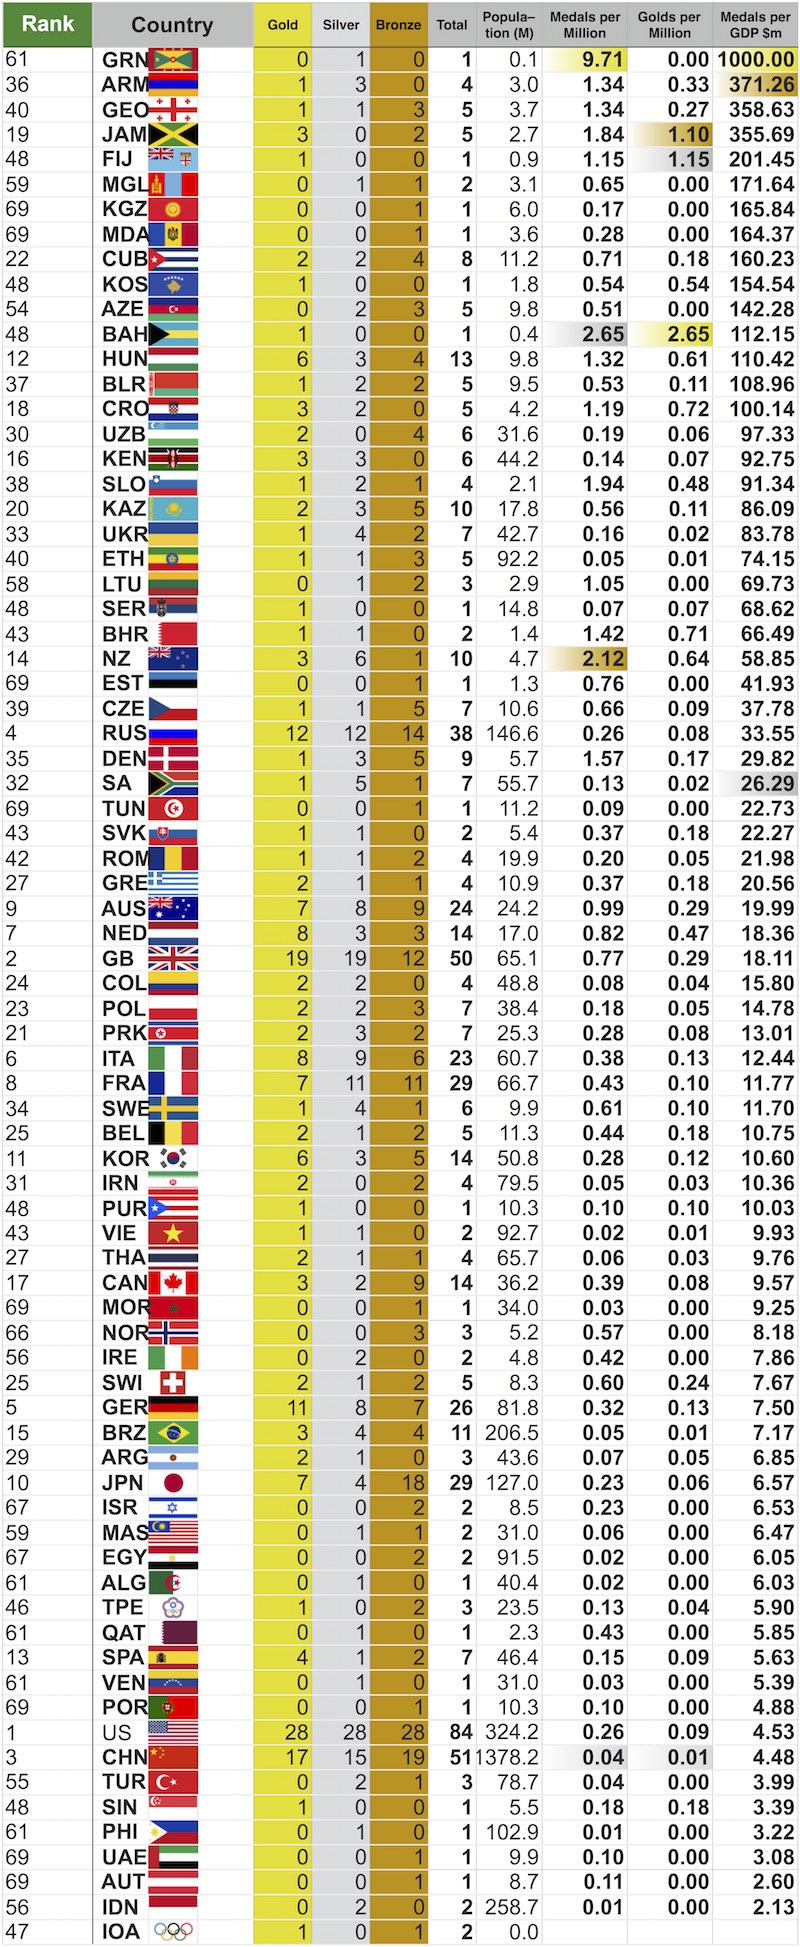 17 August Medals metrics by GDP